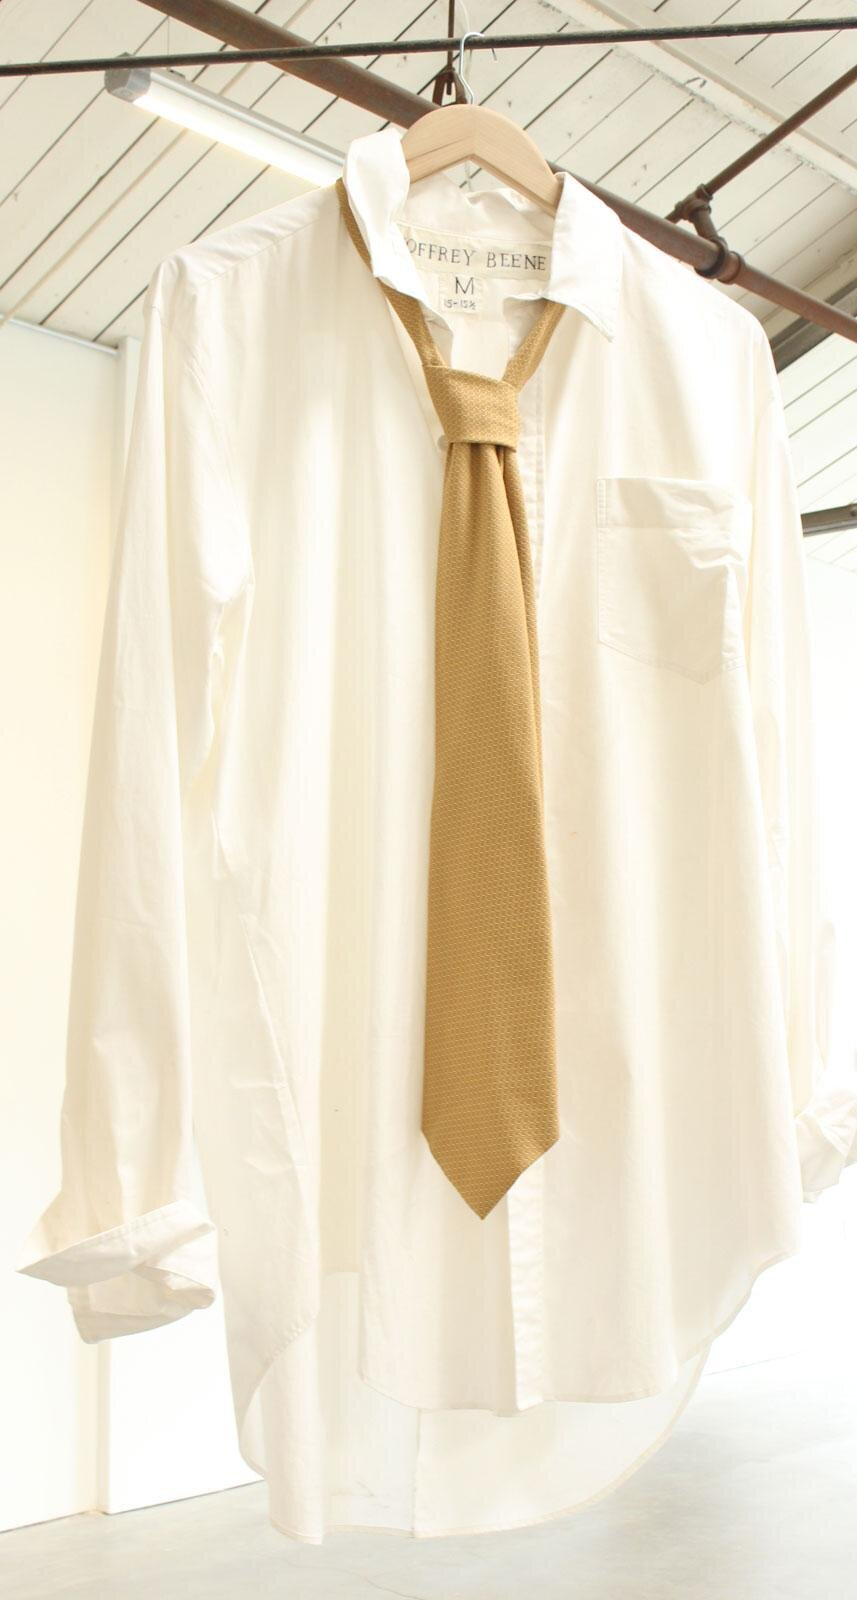 Sidney Russell, Man's White Formal Shirt With Tie